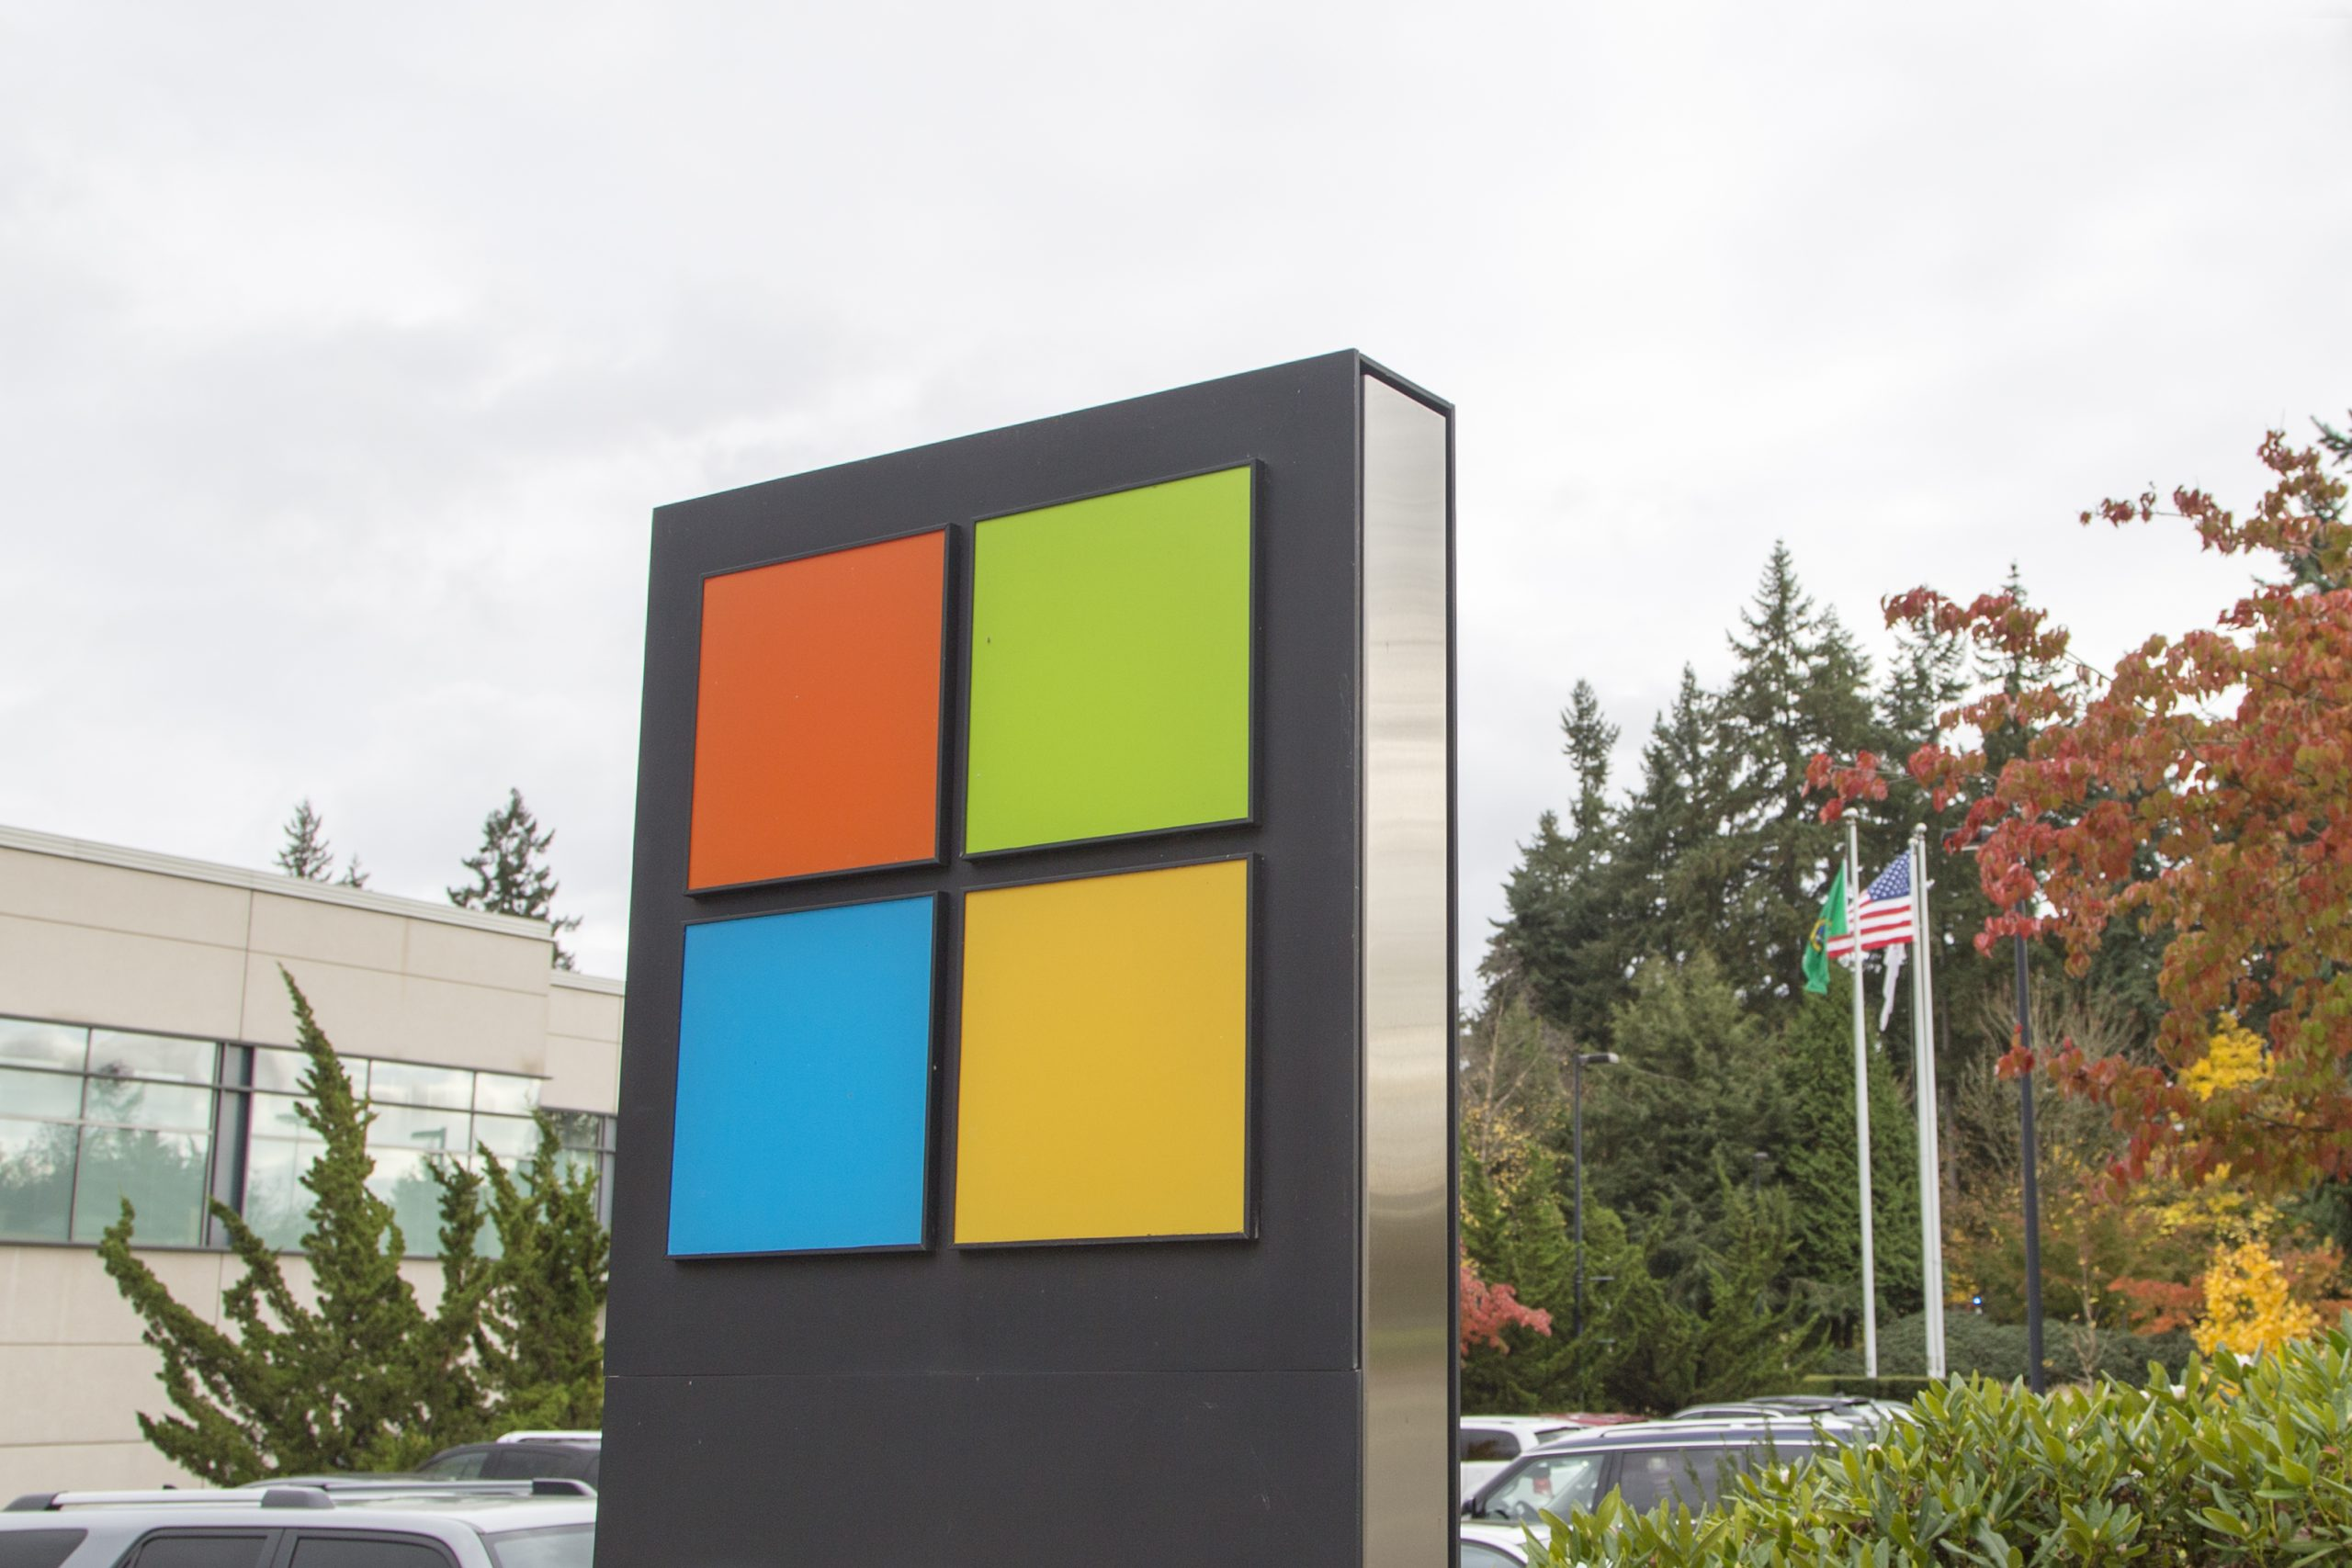 November 1, 2017 - Redmond, Washington: Microsoft's sign and flags of United States, Washington and Microsoft are visible in front of a building at company's corporate headquarters